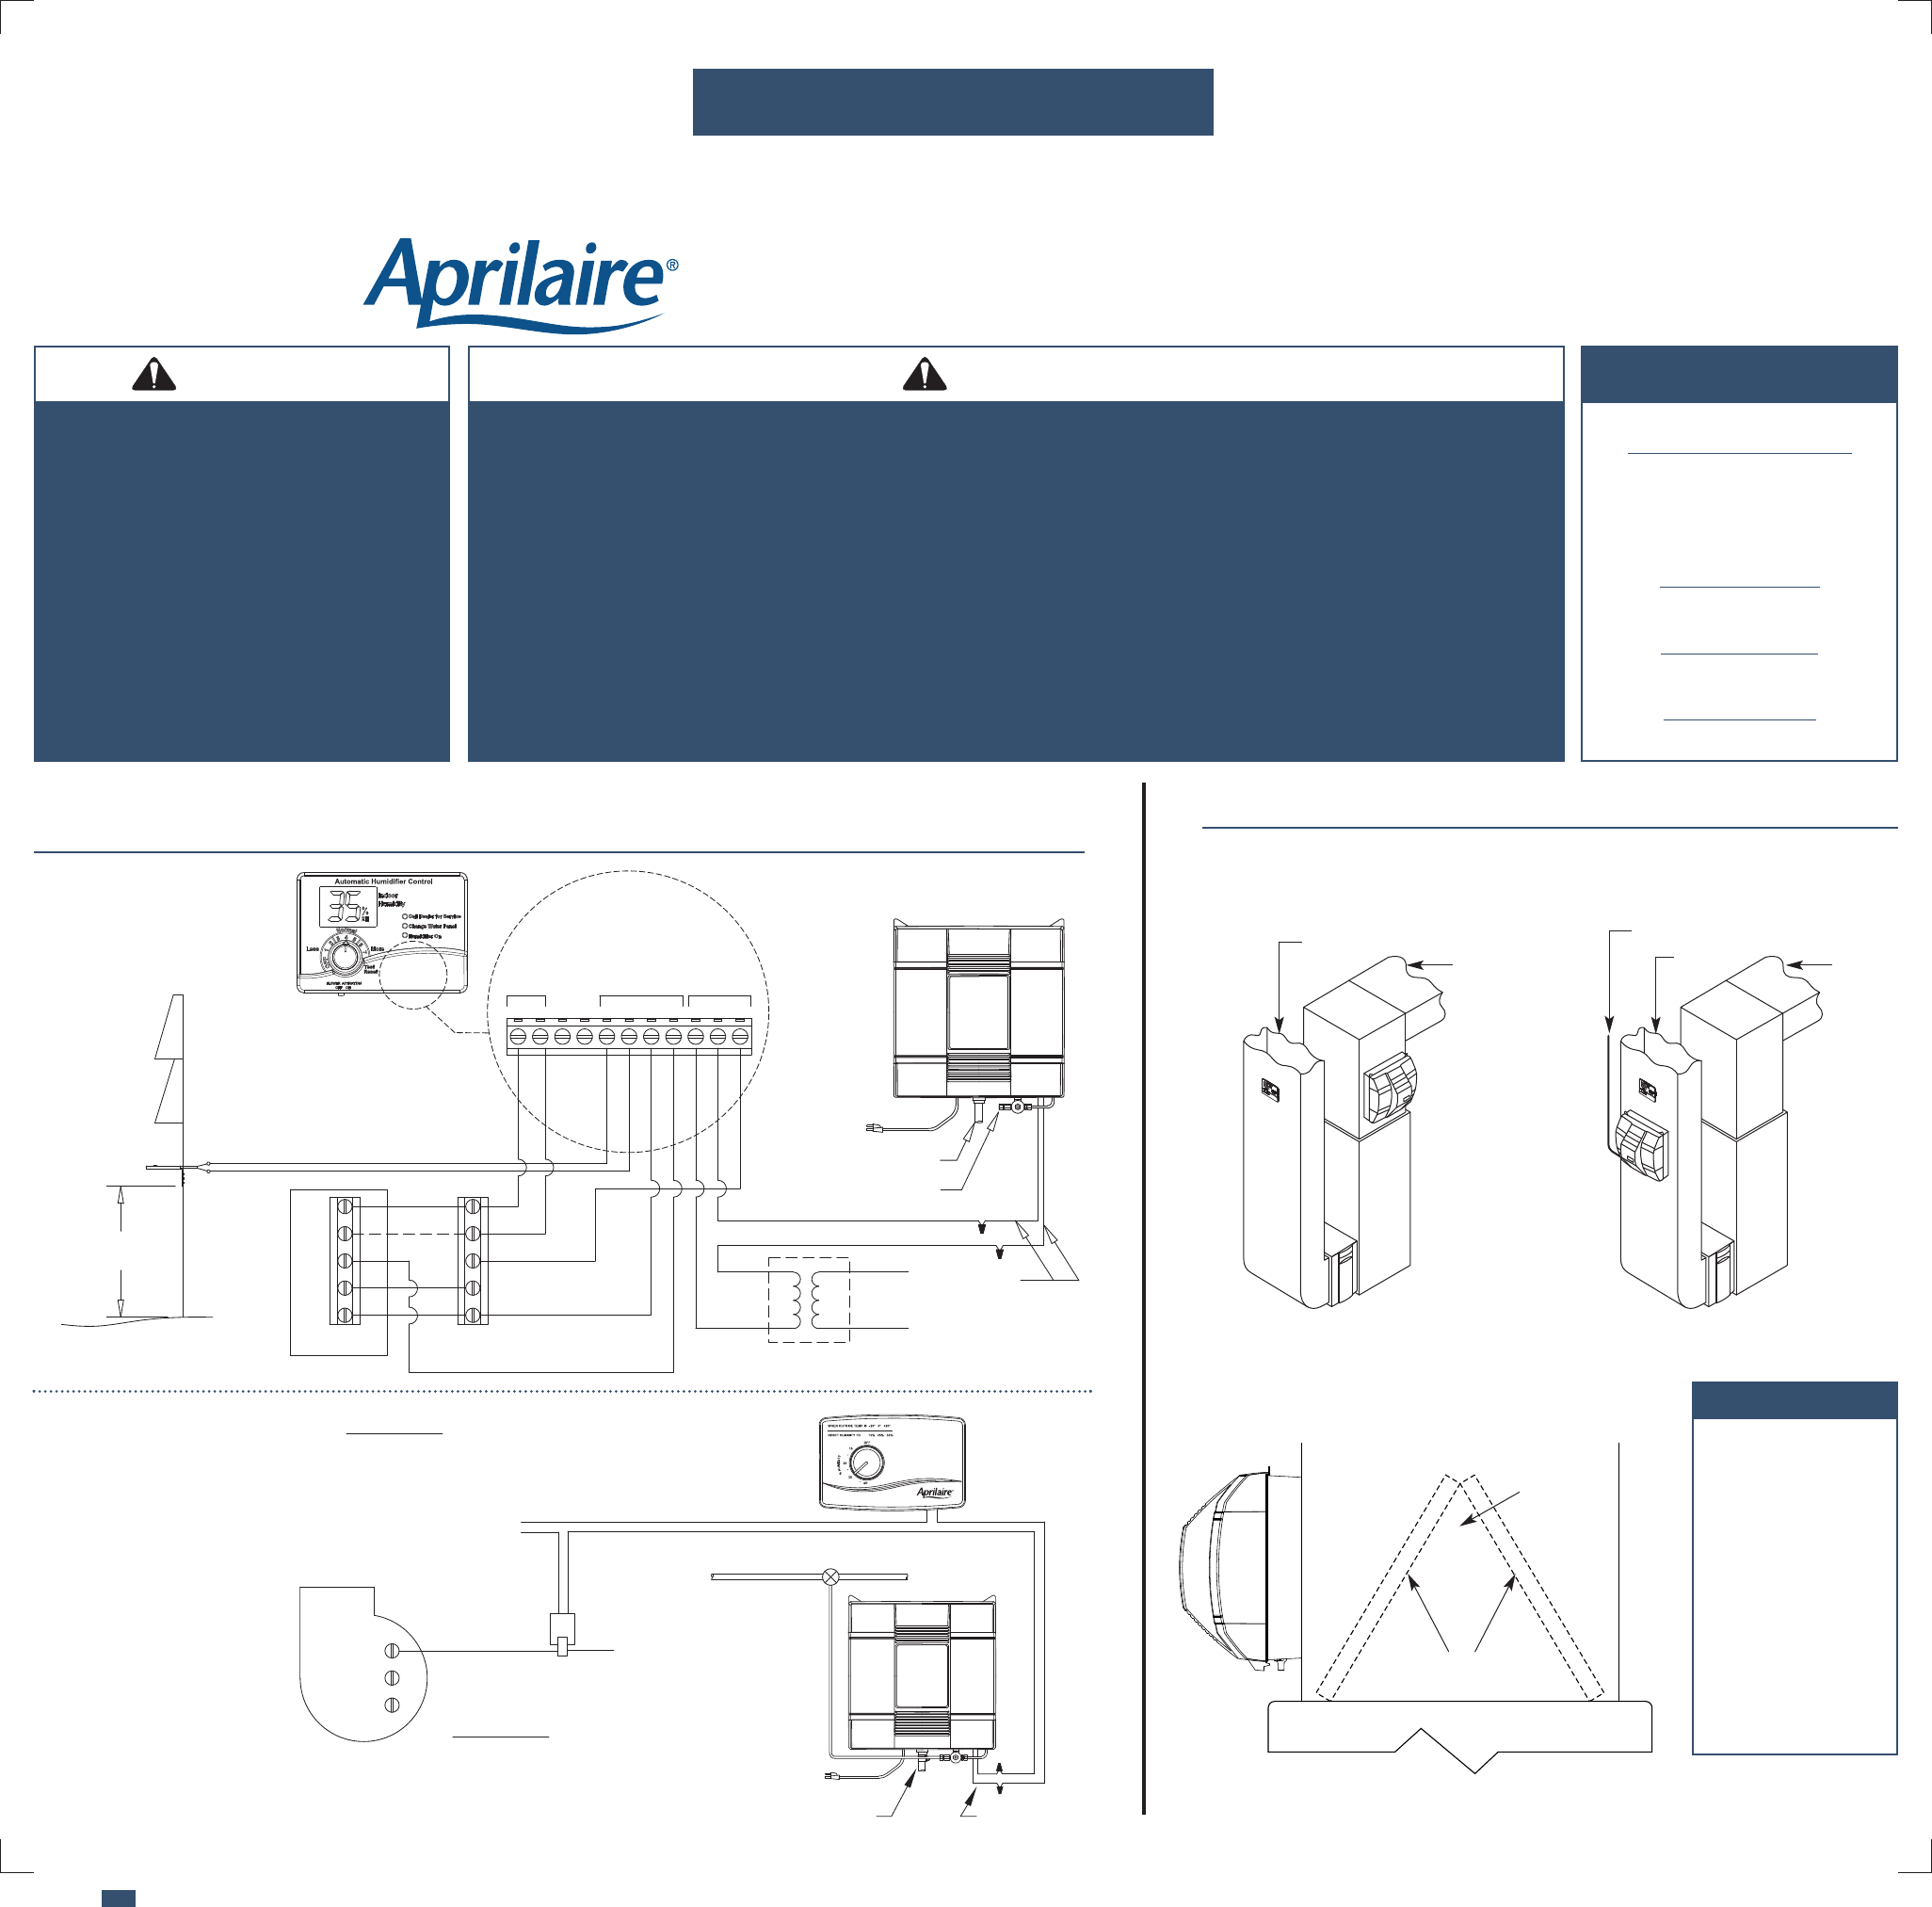 [DIAGRAM_5FD]  Aprilaire Humidifier 700 User Guide | ManualsOnline.com | Aprilaire Model 600 Wiring Diagram |  | Appliance Manuals - ManualsOnline.com